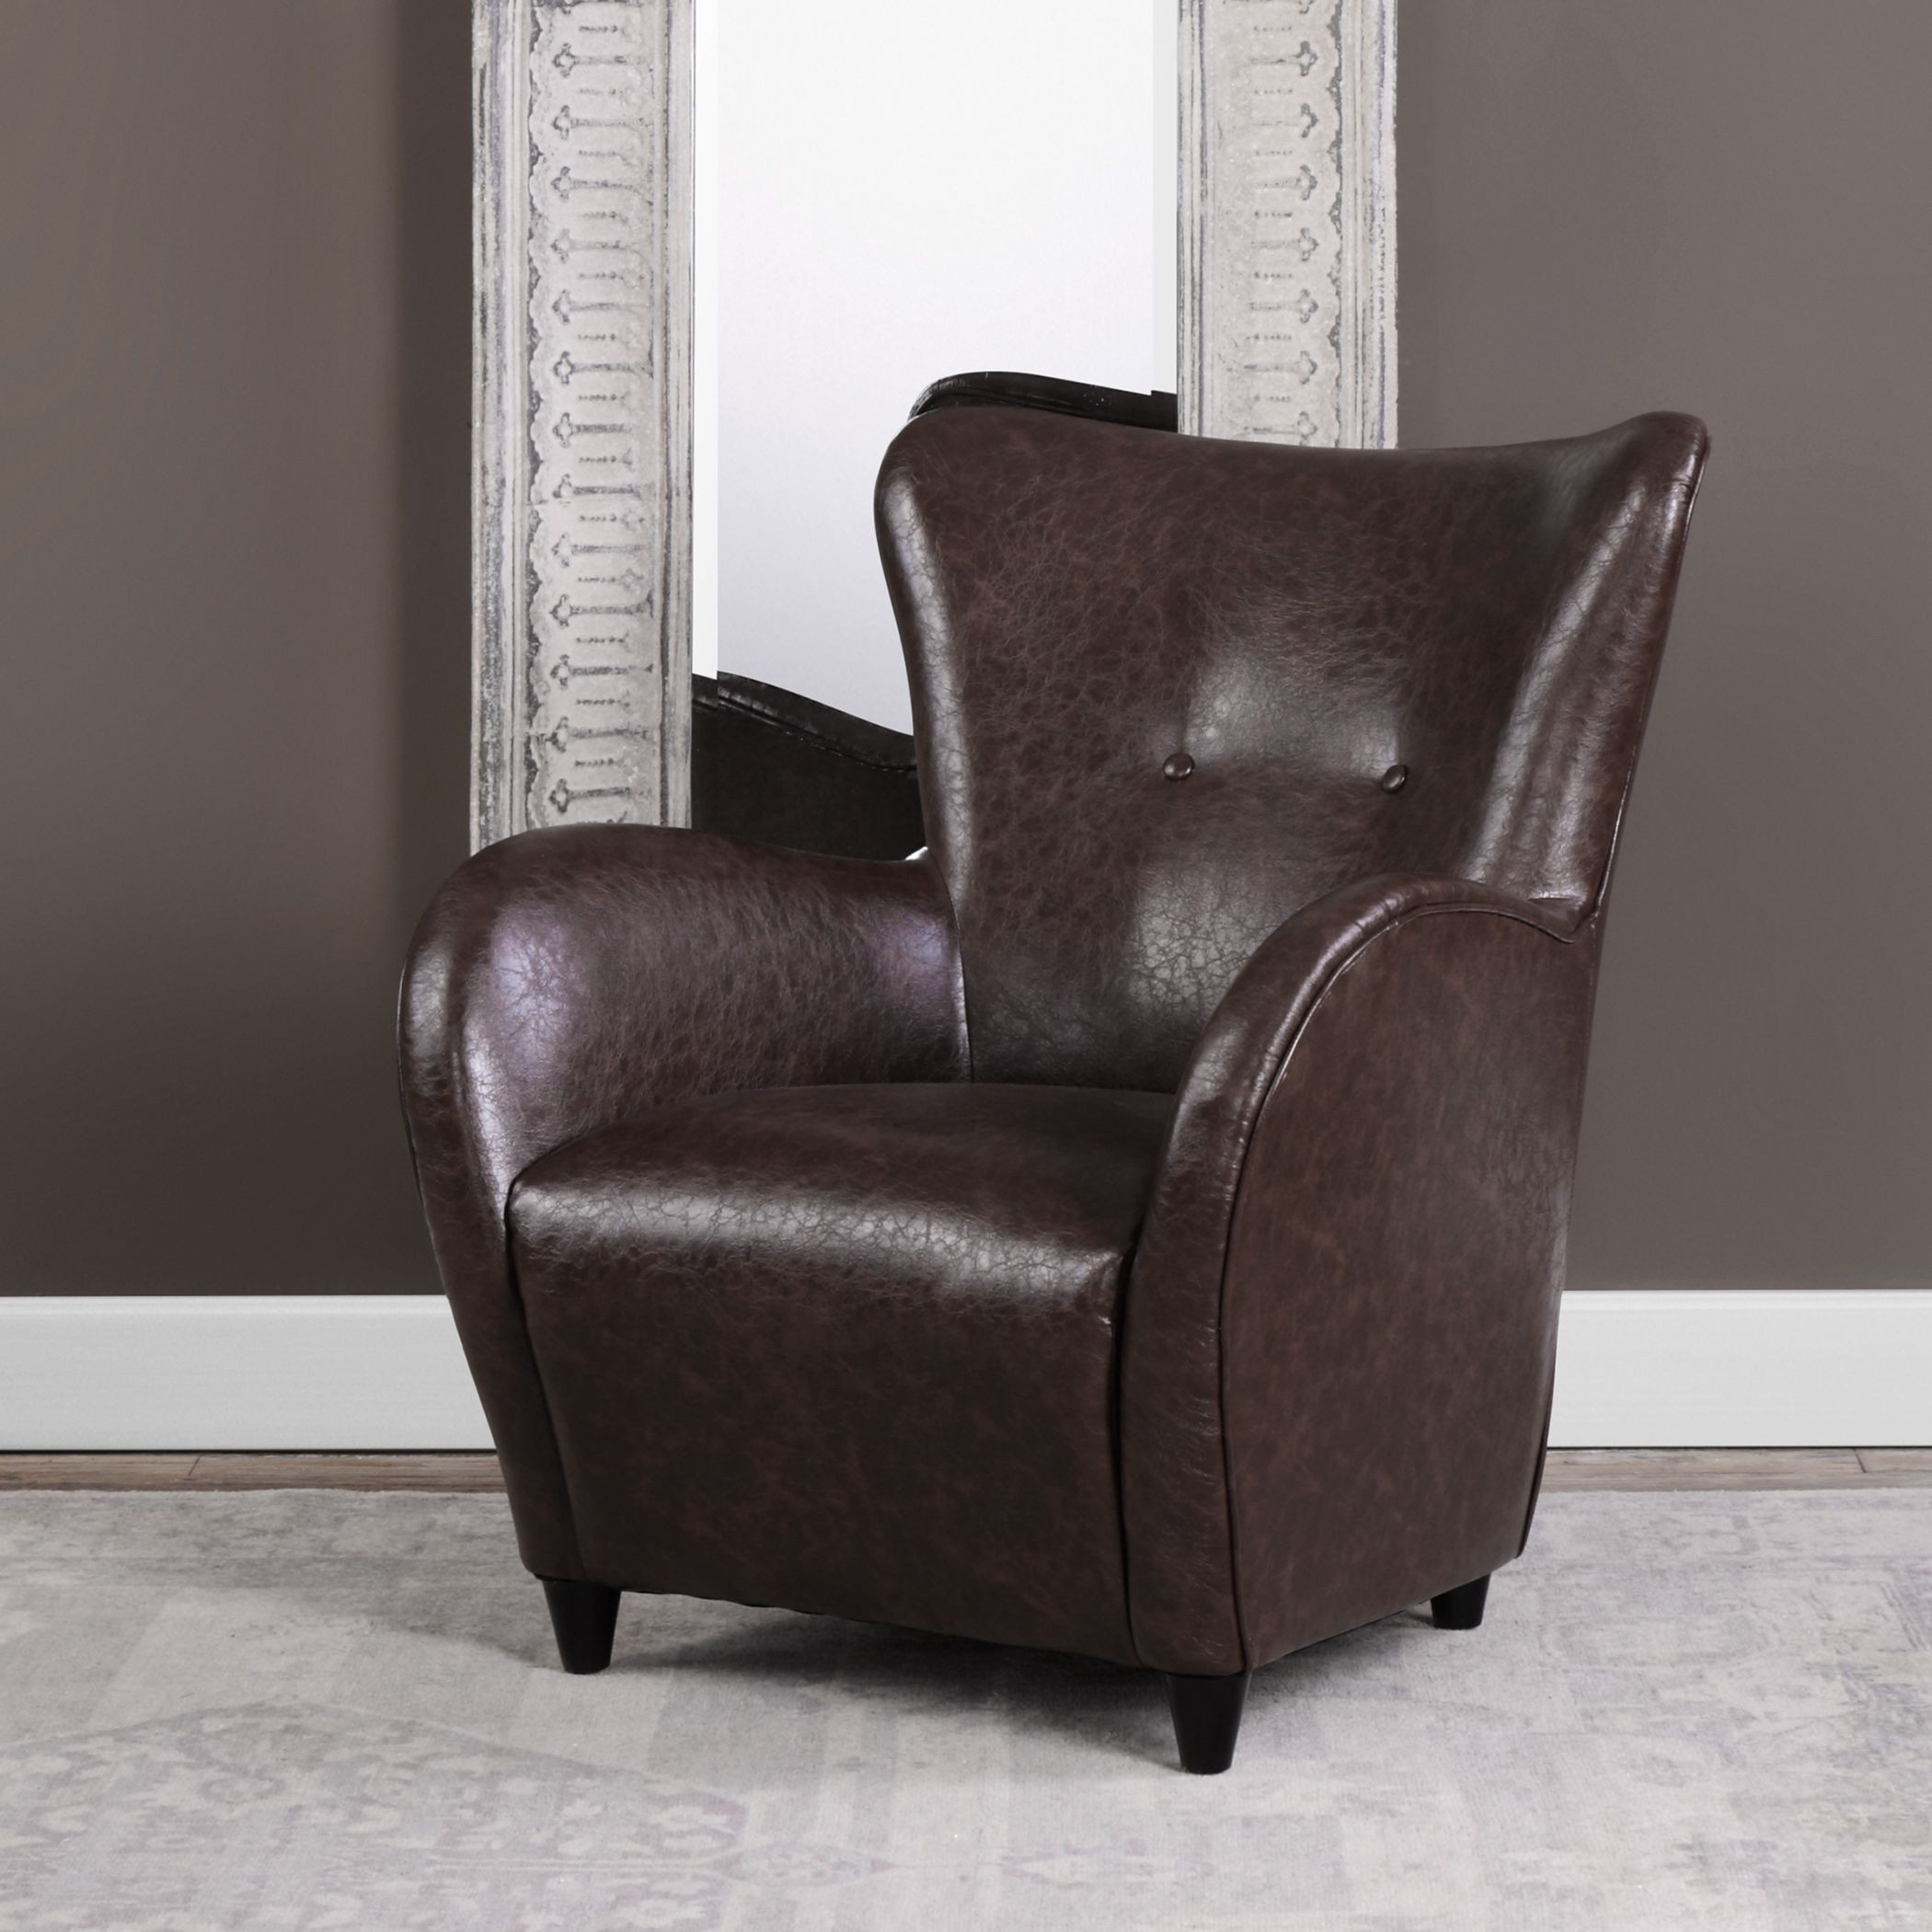 Lyric Brown Leather Accent Chair from Uttermost  Coleman